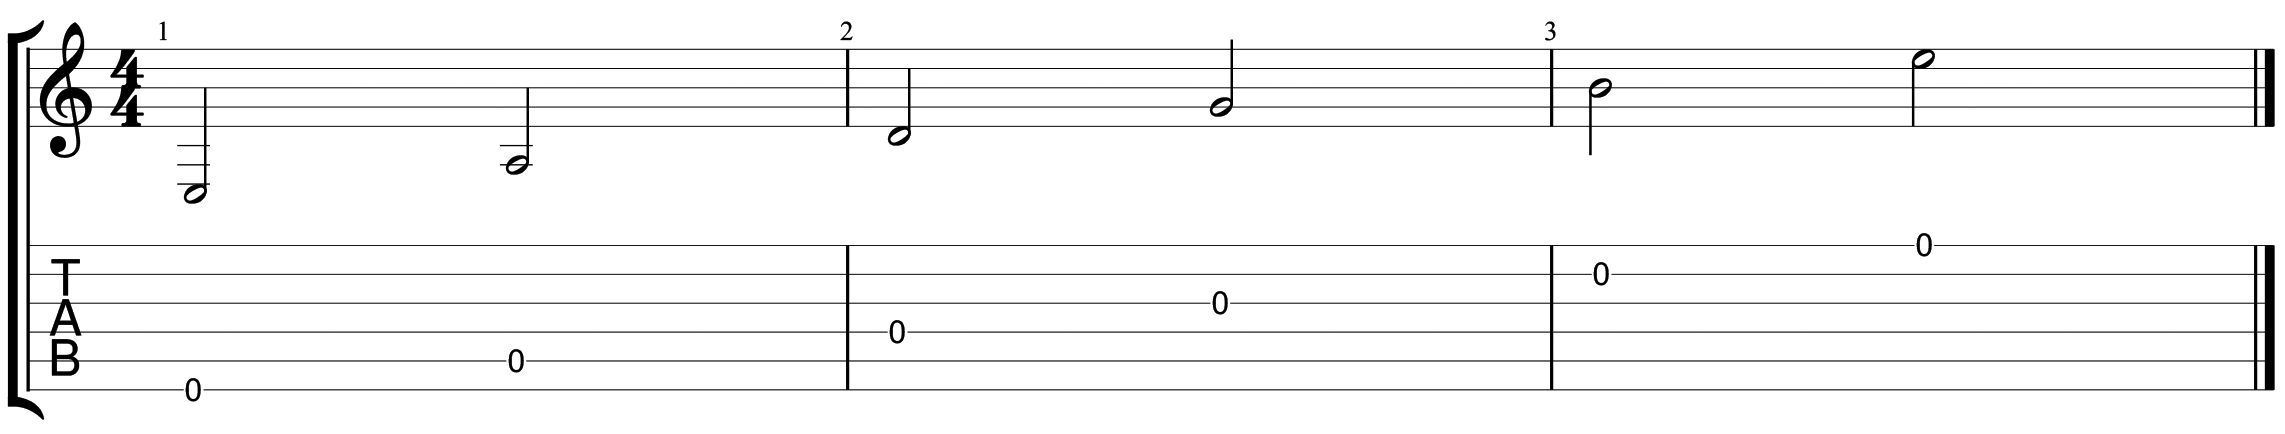 How to read guitar tab 3